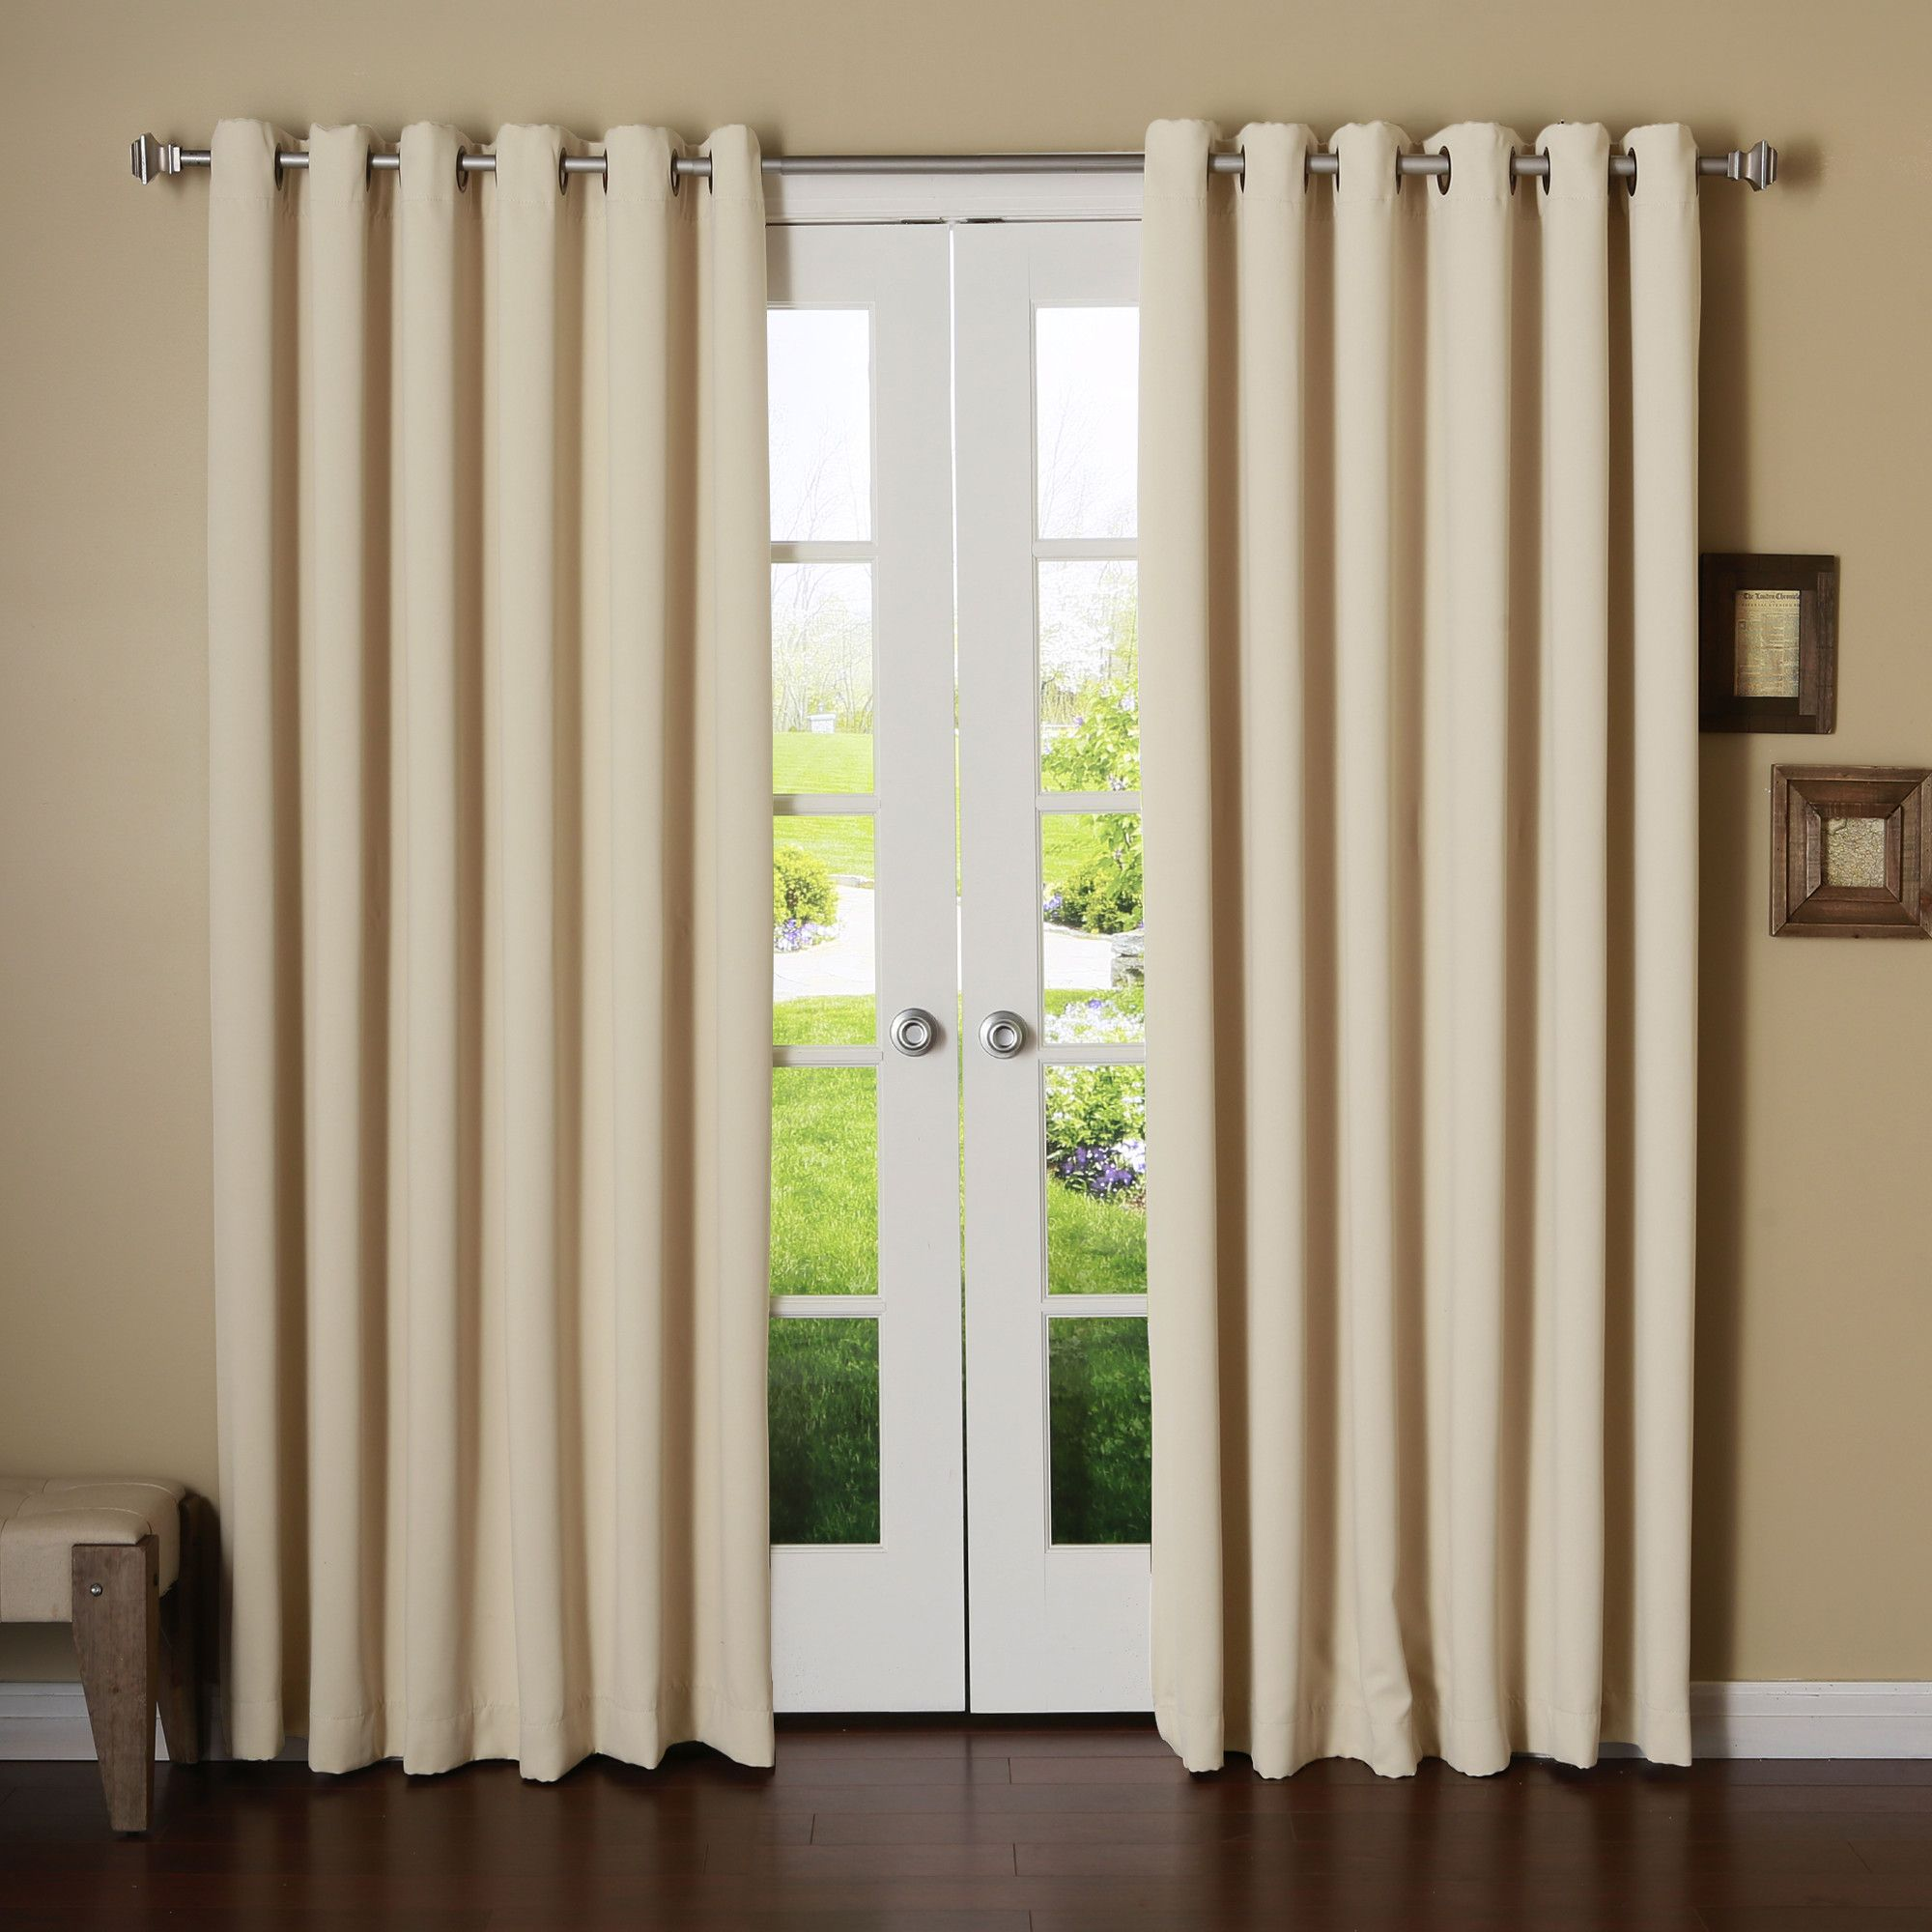 Interior Home Decor Ideas with Extra Long Curtain Rods: Silver Extra ...